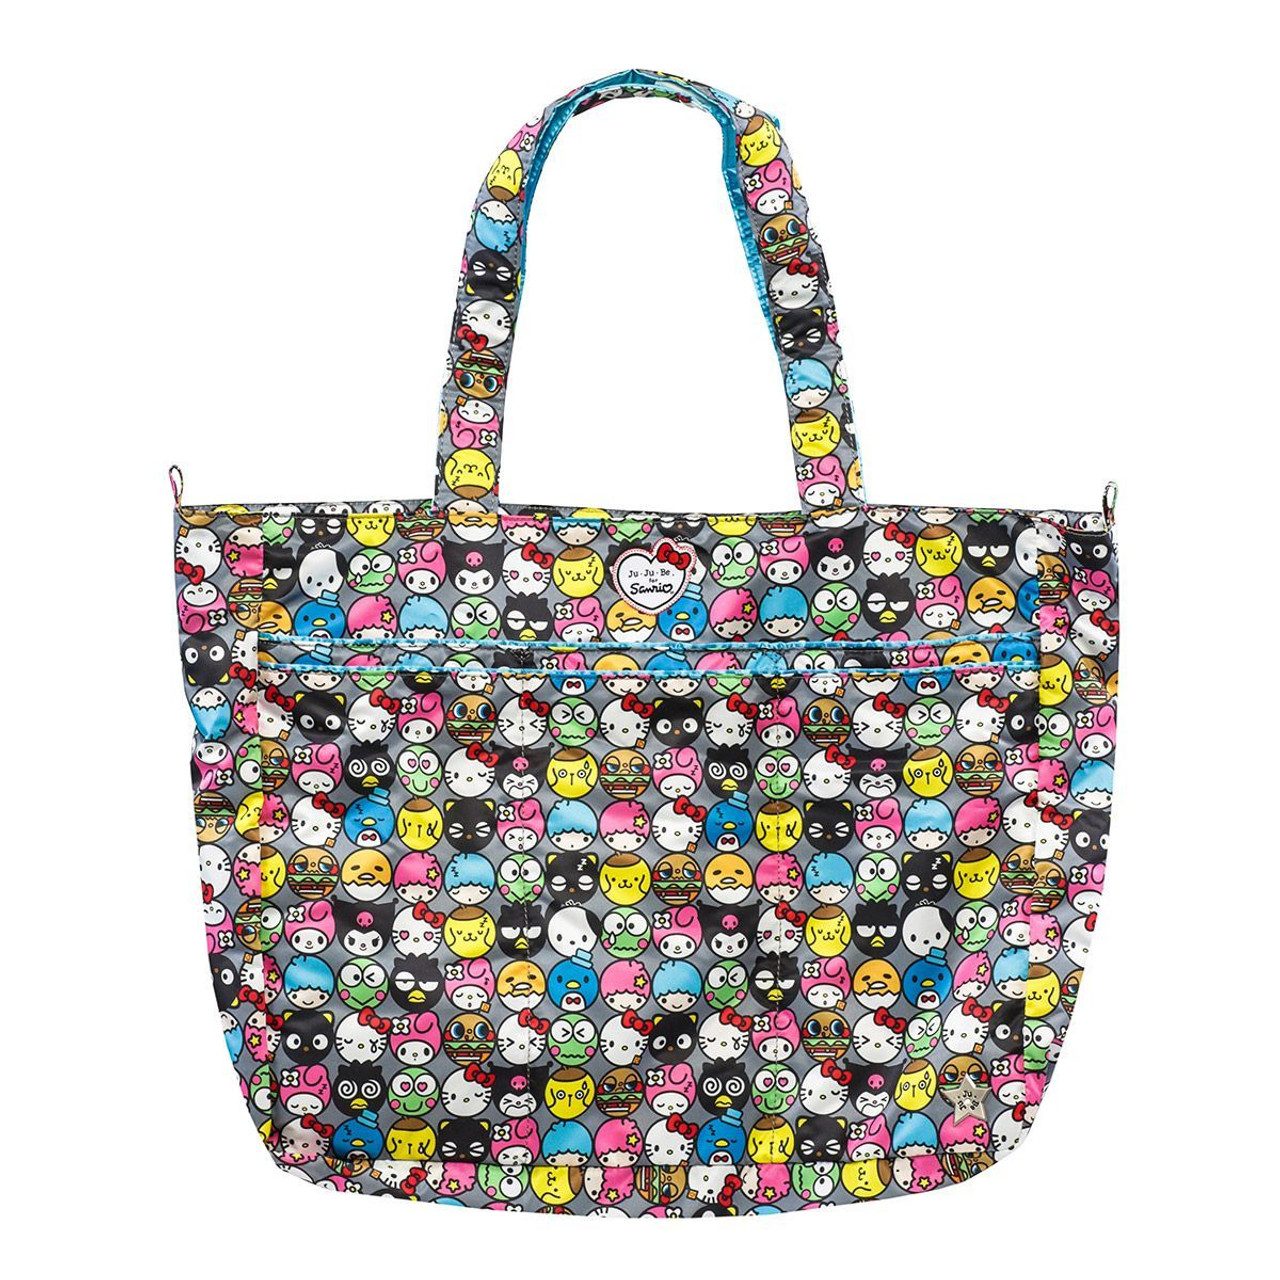 Ju-Ju-Be Sanrio Hello Kitty Super Be Tote Bag Purse Baby Bag 14FF02HK-HFR -  Fearless Apparel 6c7238ec12056